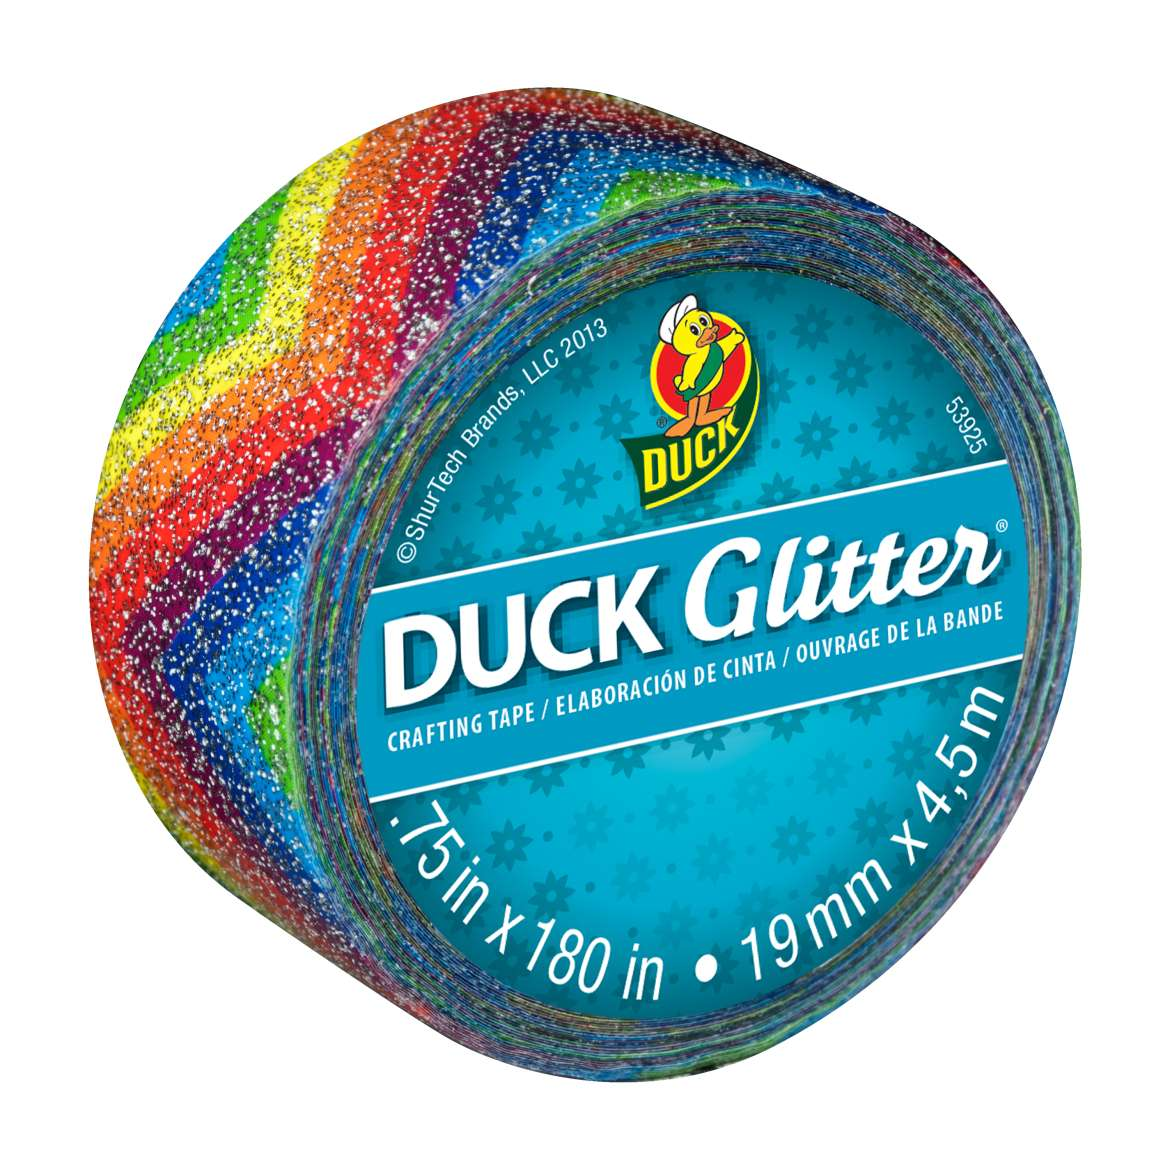 Duck Glitter® Crafting Tape - Rainbow, .75 in. x 180 in. Image